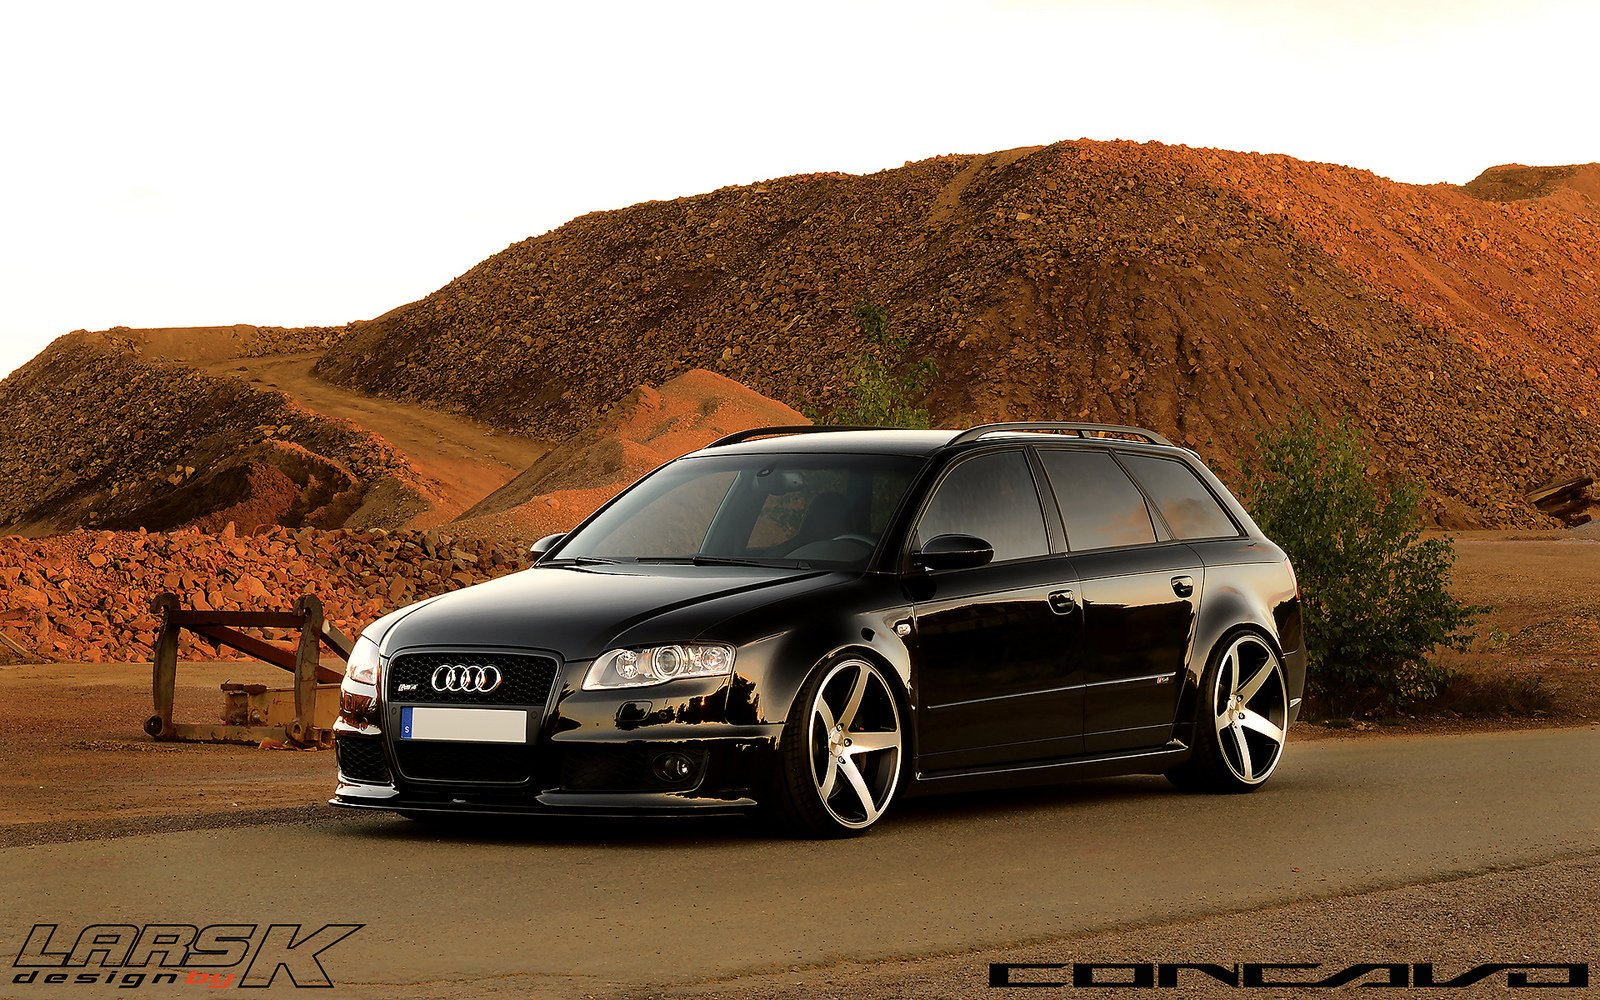 Audi Rs4 Avant Tuning Concavo Wheels Cars Wallpaper